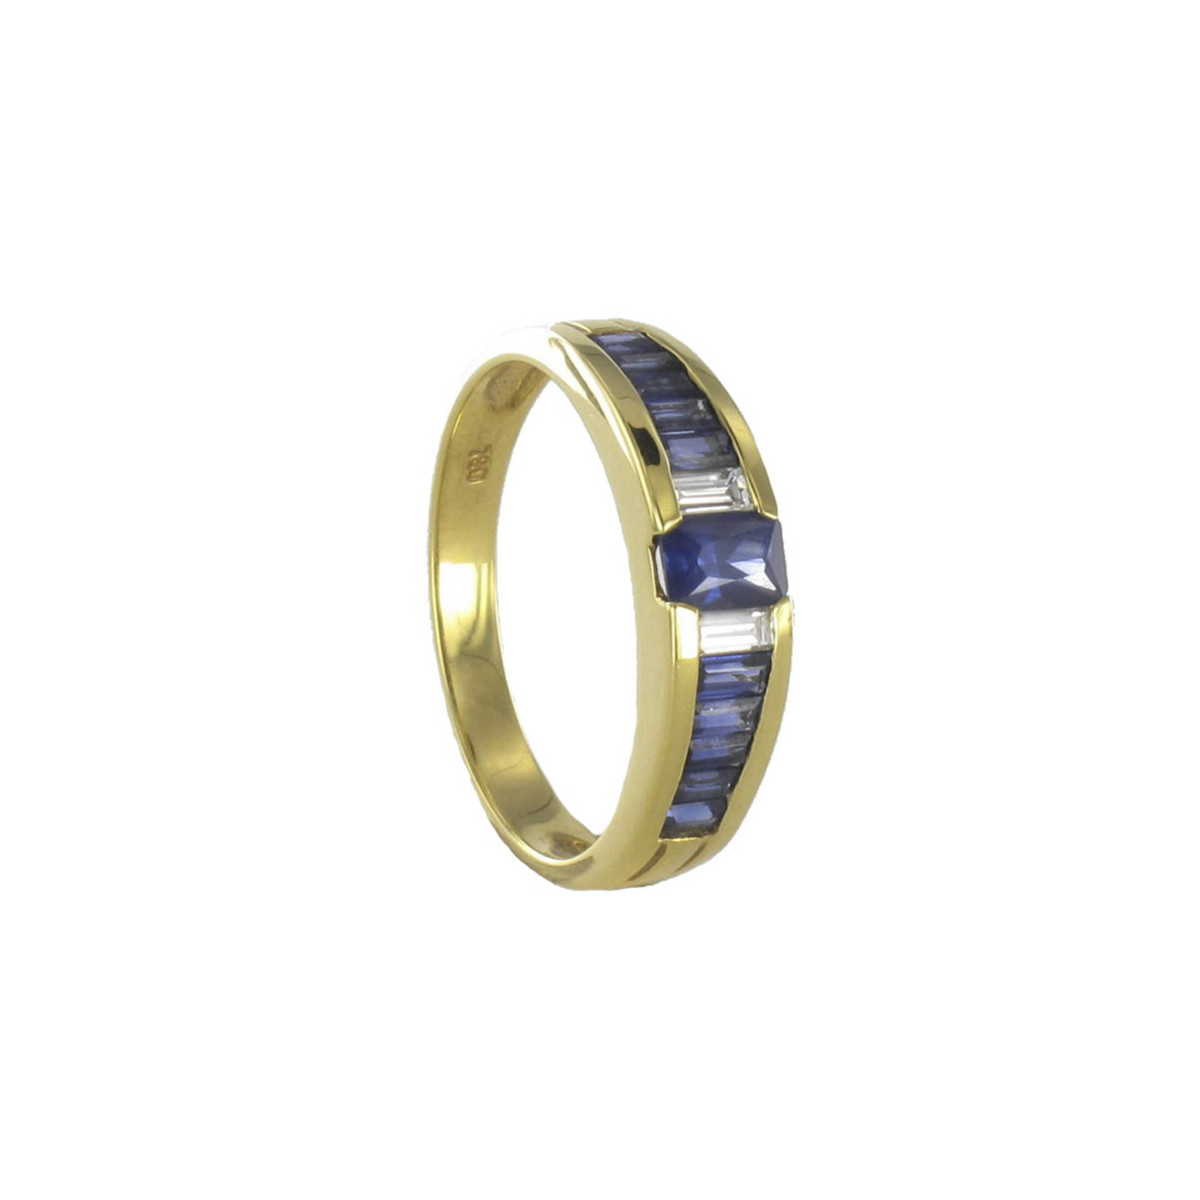 GOLD SAPPHIRES AND DIAMONDS RING